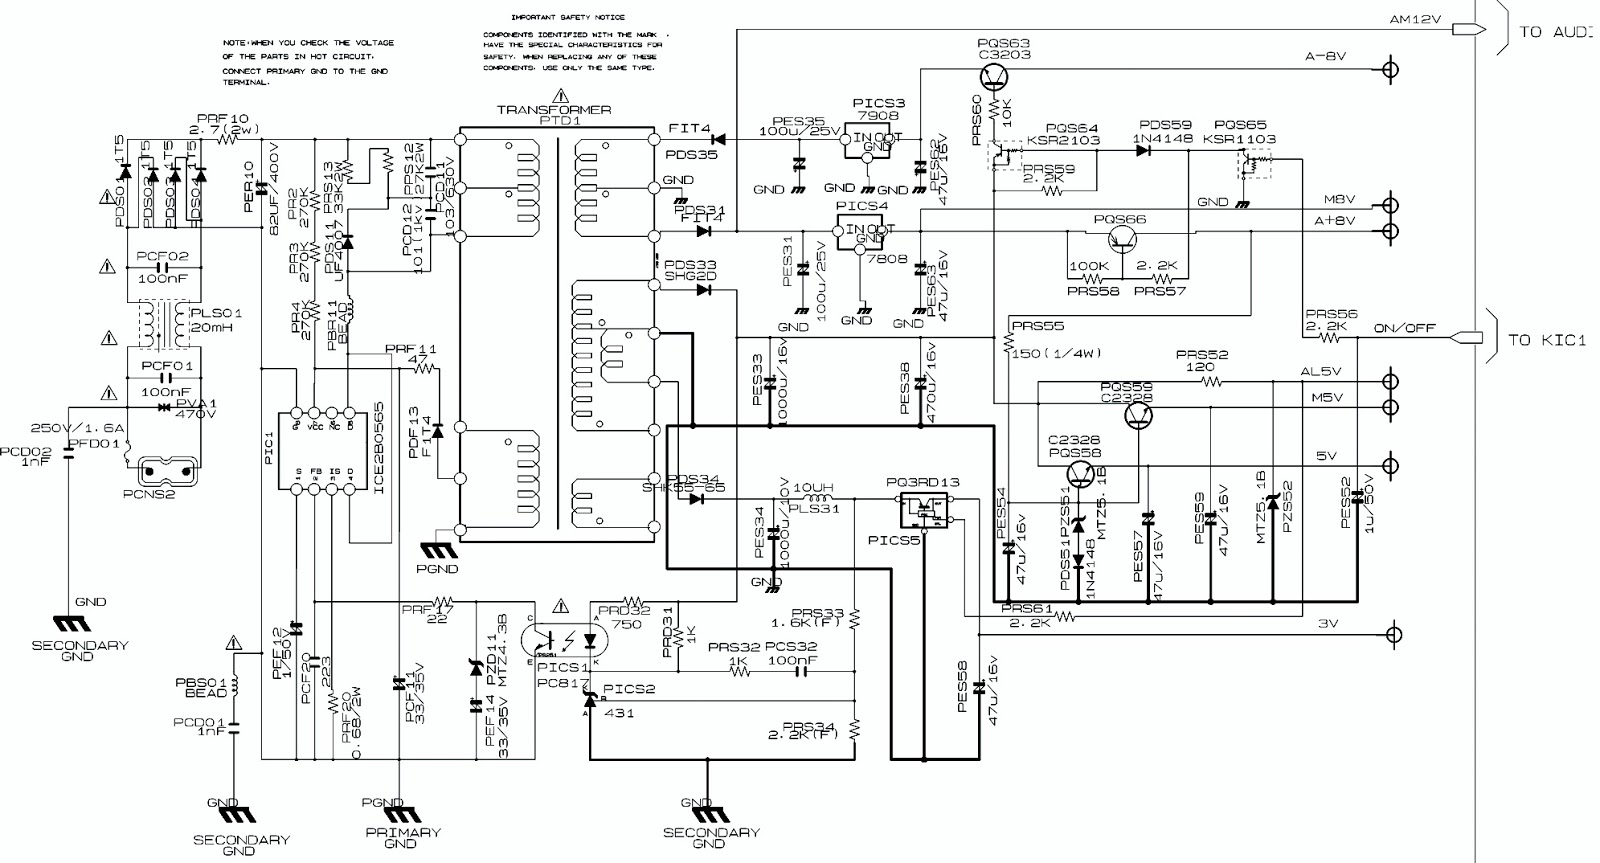 hight resolution of  new from this samsung tv schematic diagram circuit diagrams and download service repair manuals and schematic diagrams xmid service manual dvd